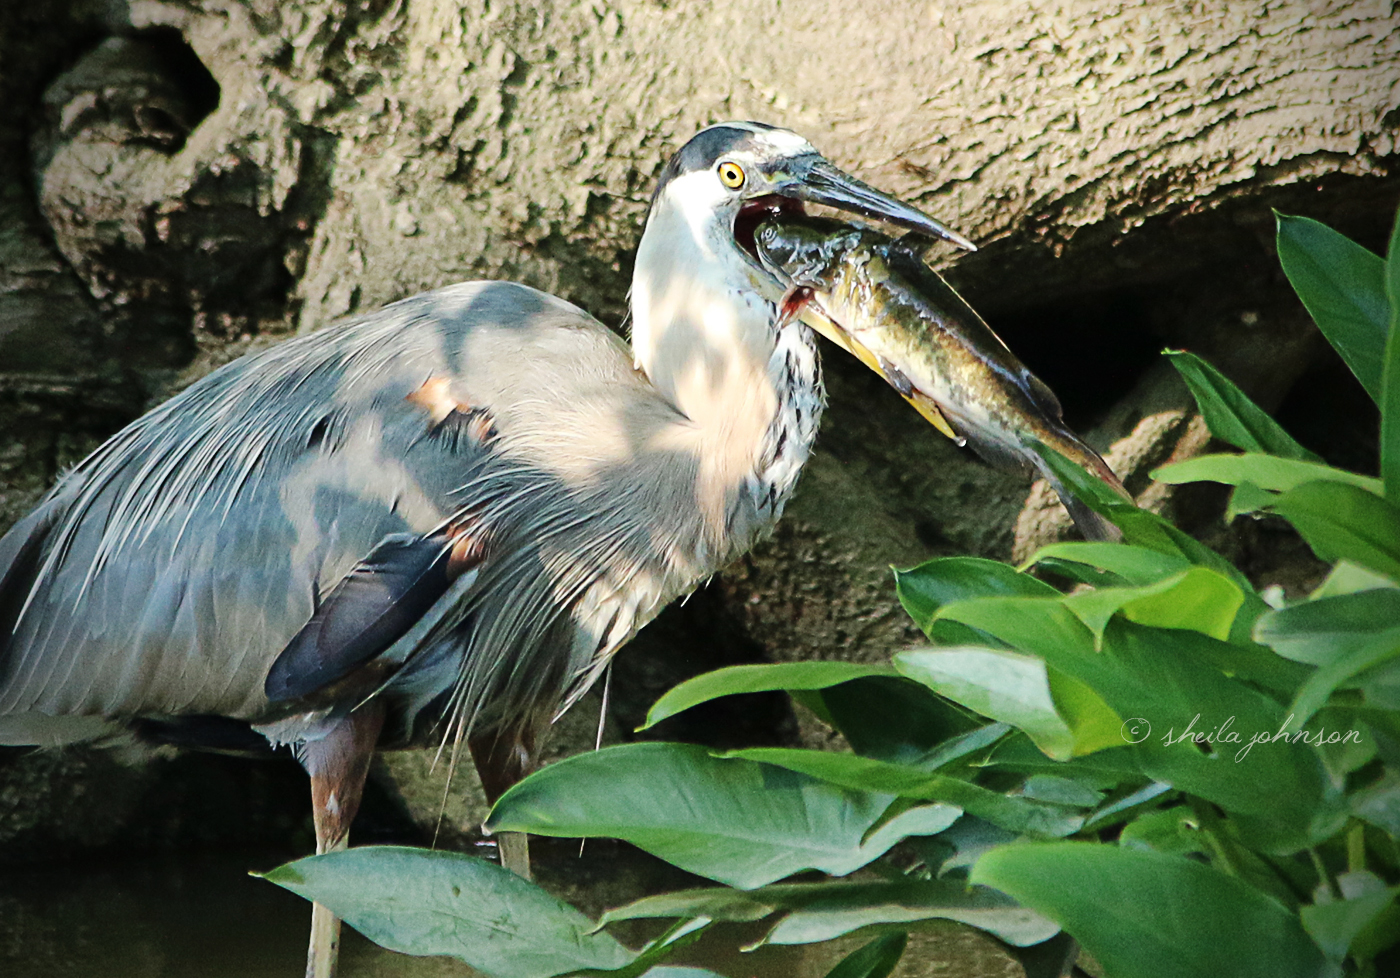 I Wasn't So Surprised This Great Blue Heron Caught Such A Big Fish. I Was Very Surprised To See An Attempt To Swallow It Whole! I'm Always Amazed At The Size Of Fish Eaten Compared To The Size Of The Bird Doing The Eating.